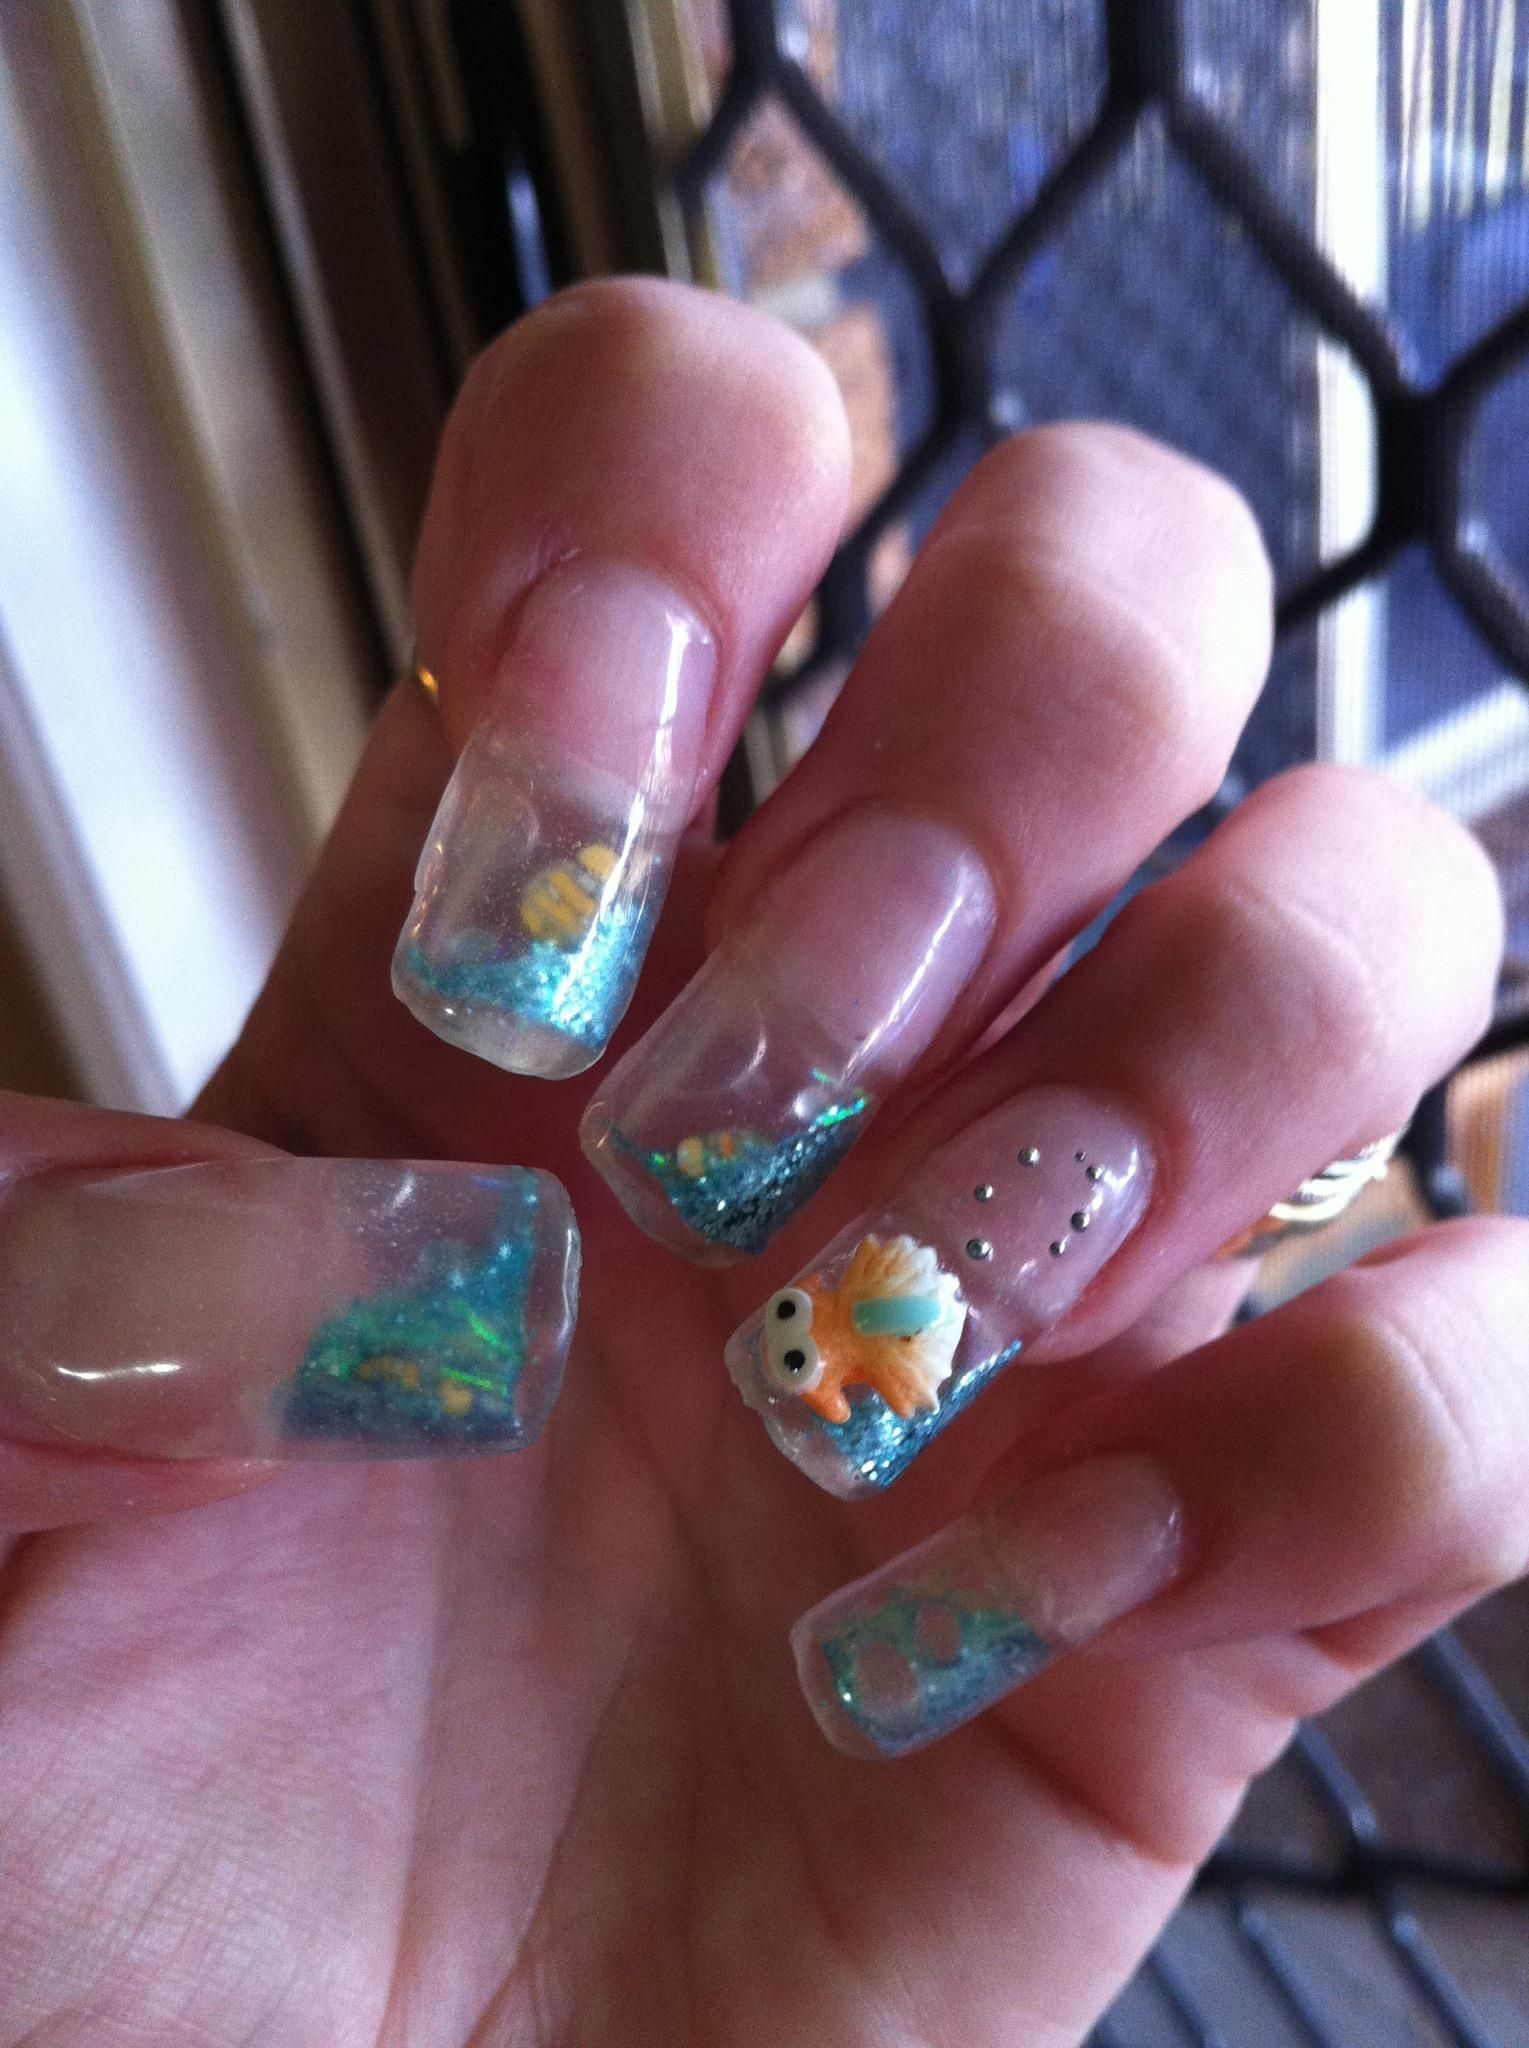 water filled nail tips with little